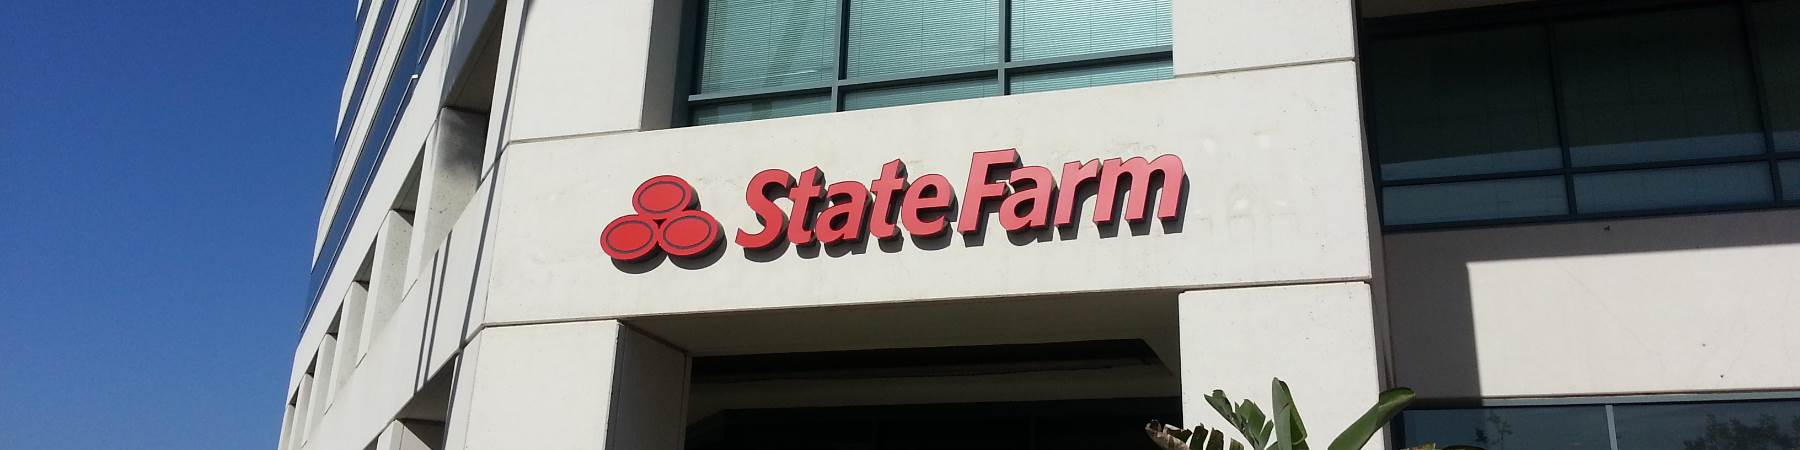 Carl Ferraro State Farm Insurance in Huntington Beach, CA | Home, Auto Insurance & more